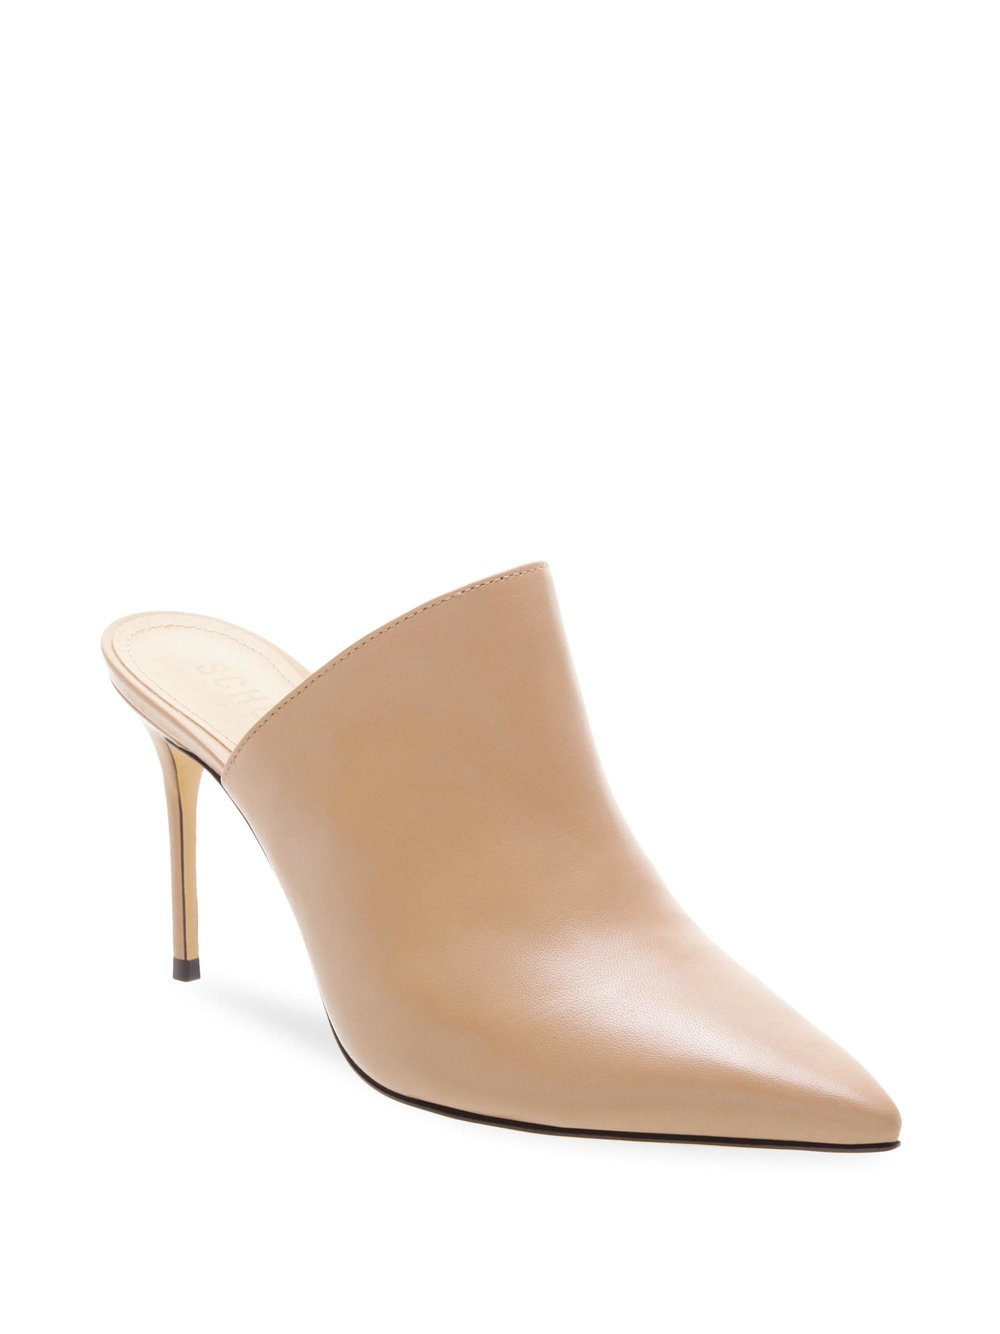 A Neutral Heel -